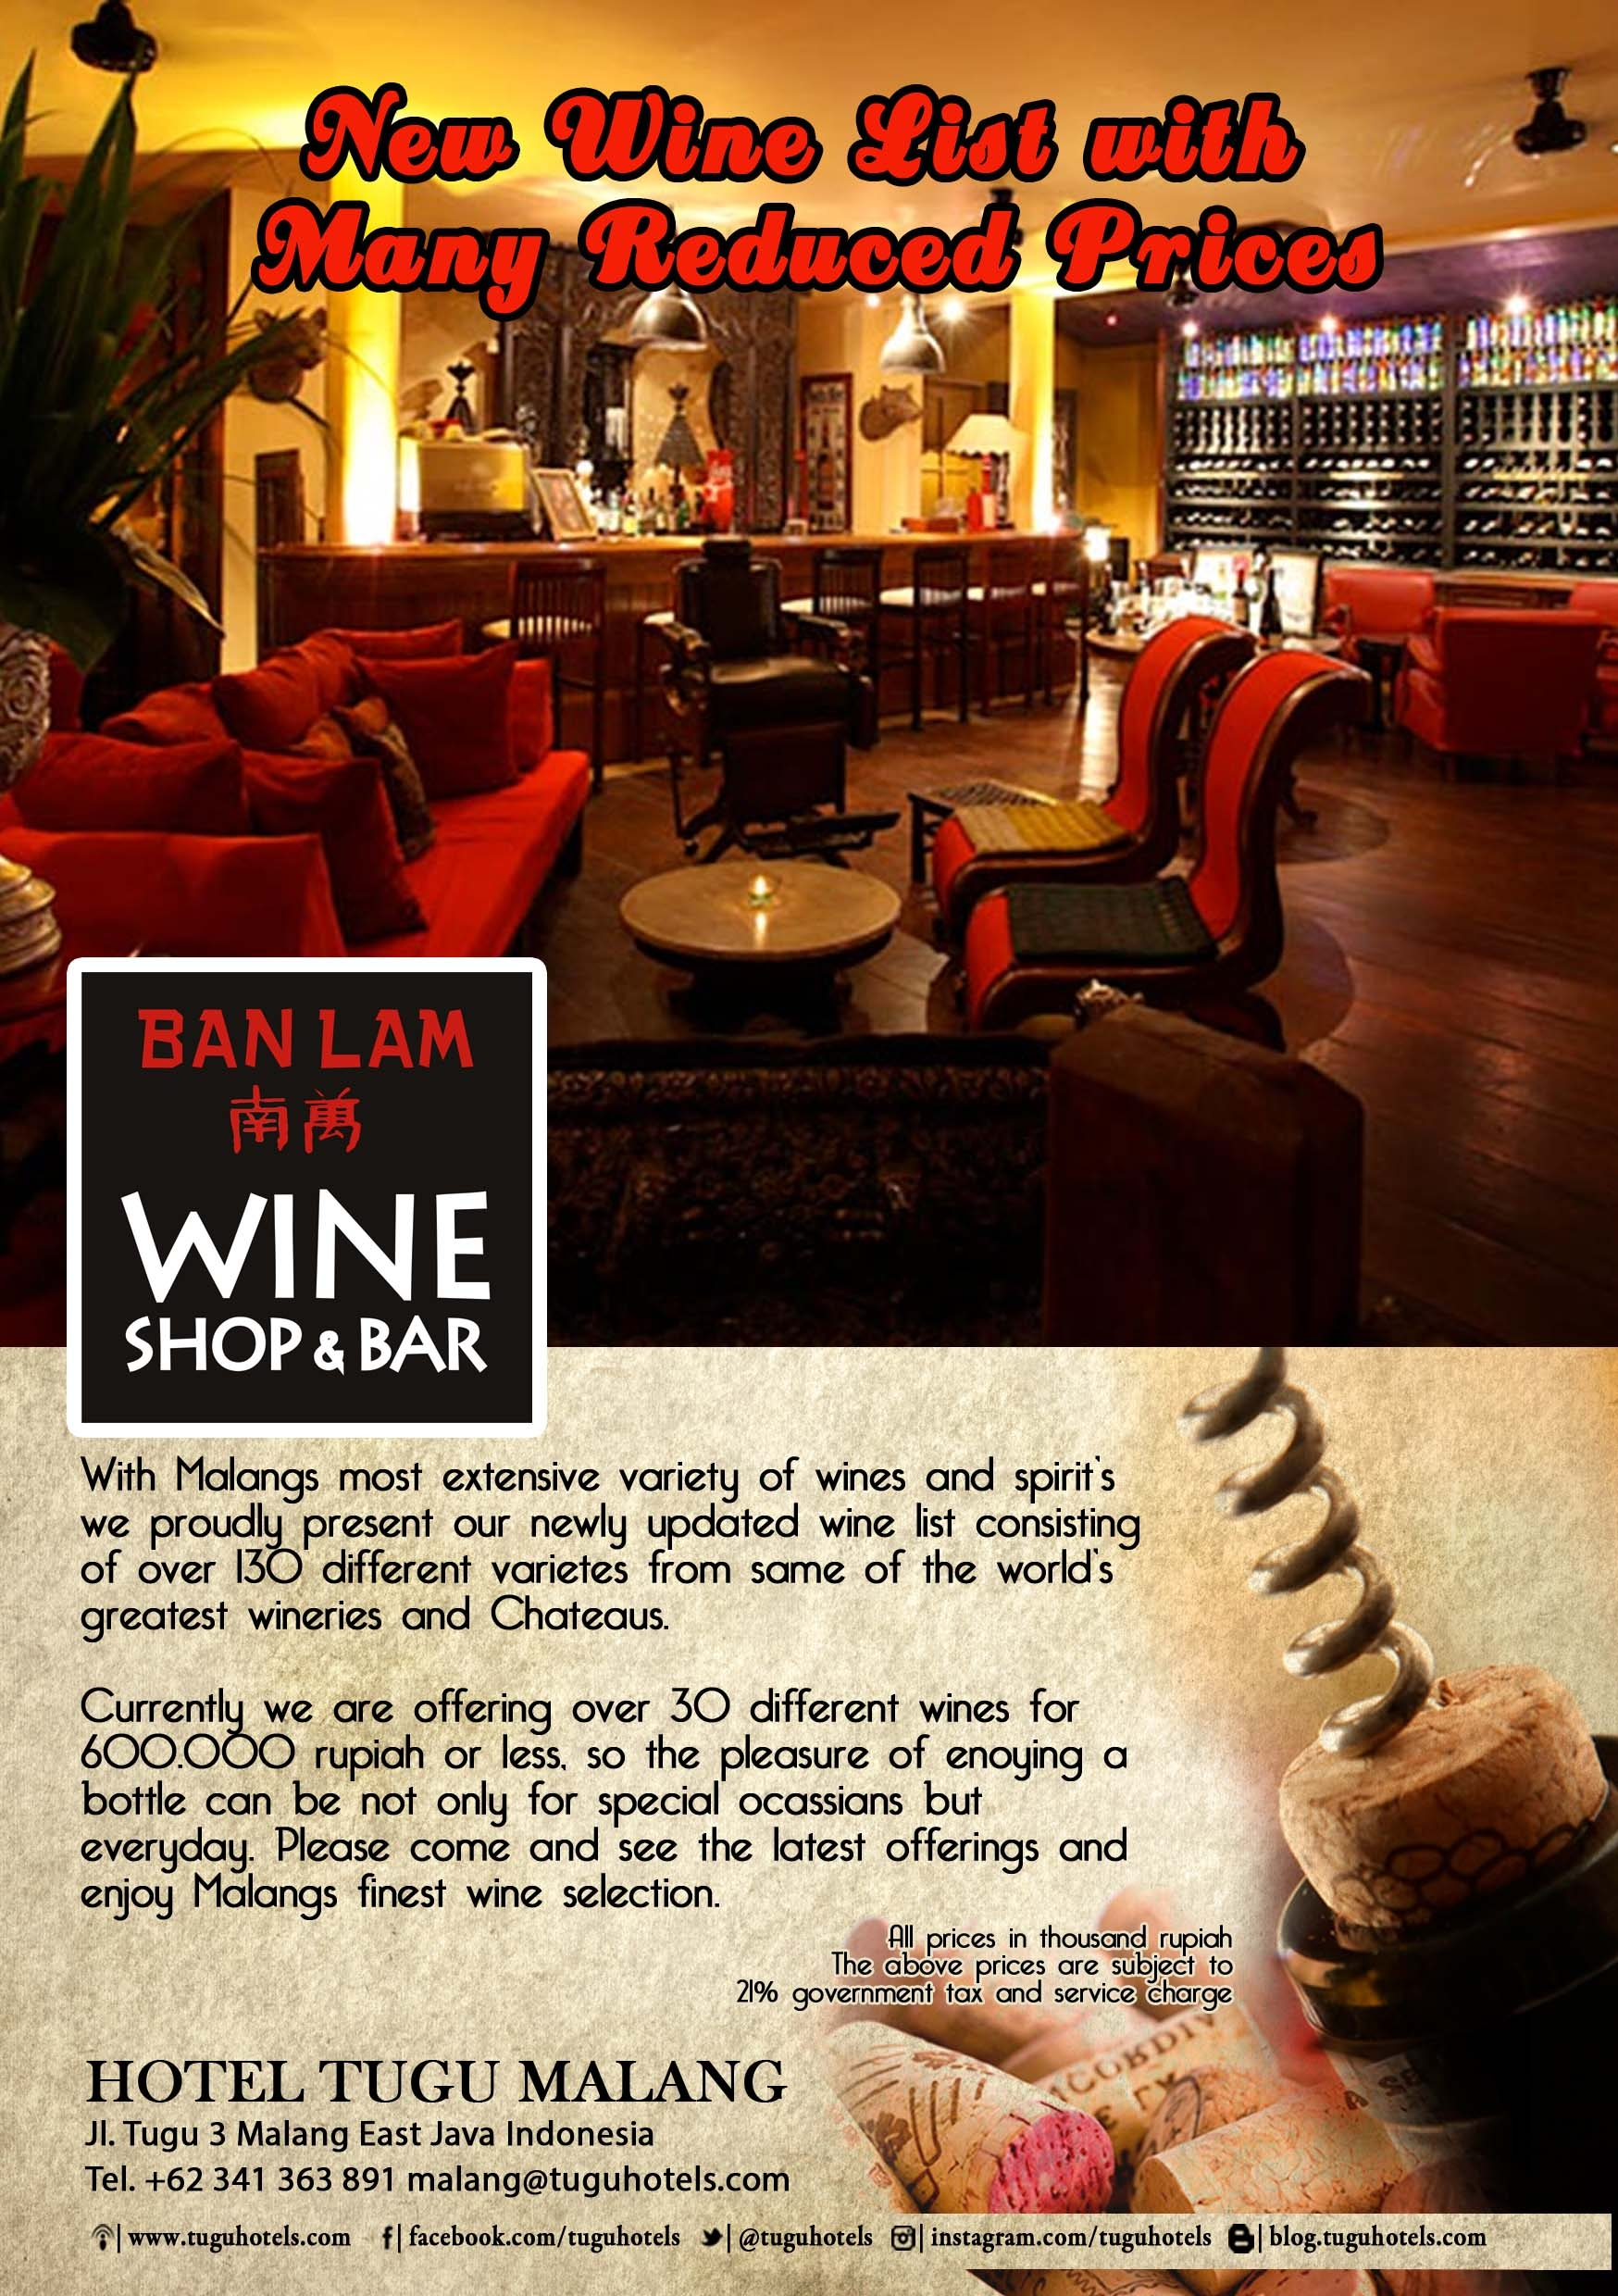 New Wine List with Many Reduced Prices at Banlam Wine Shop & Bar